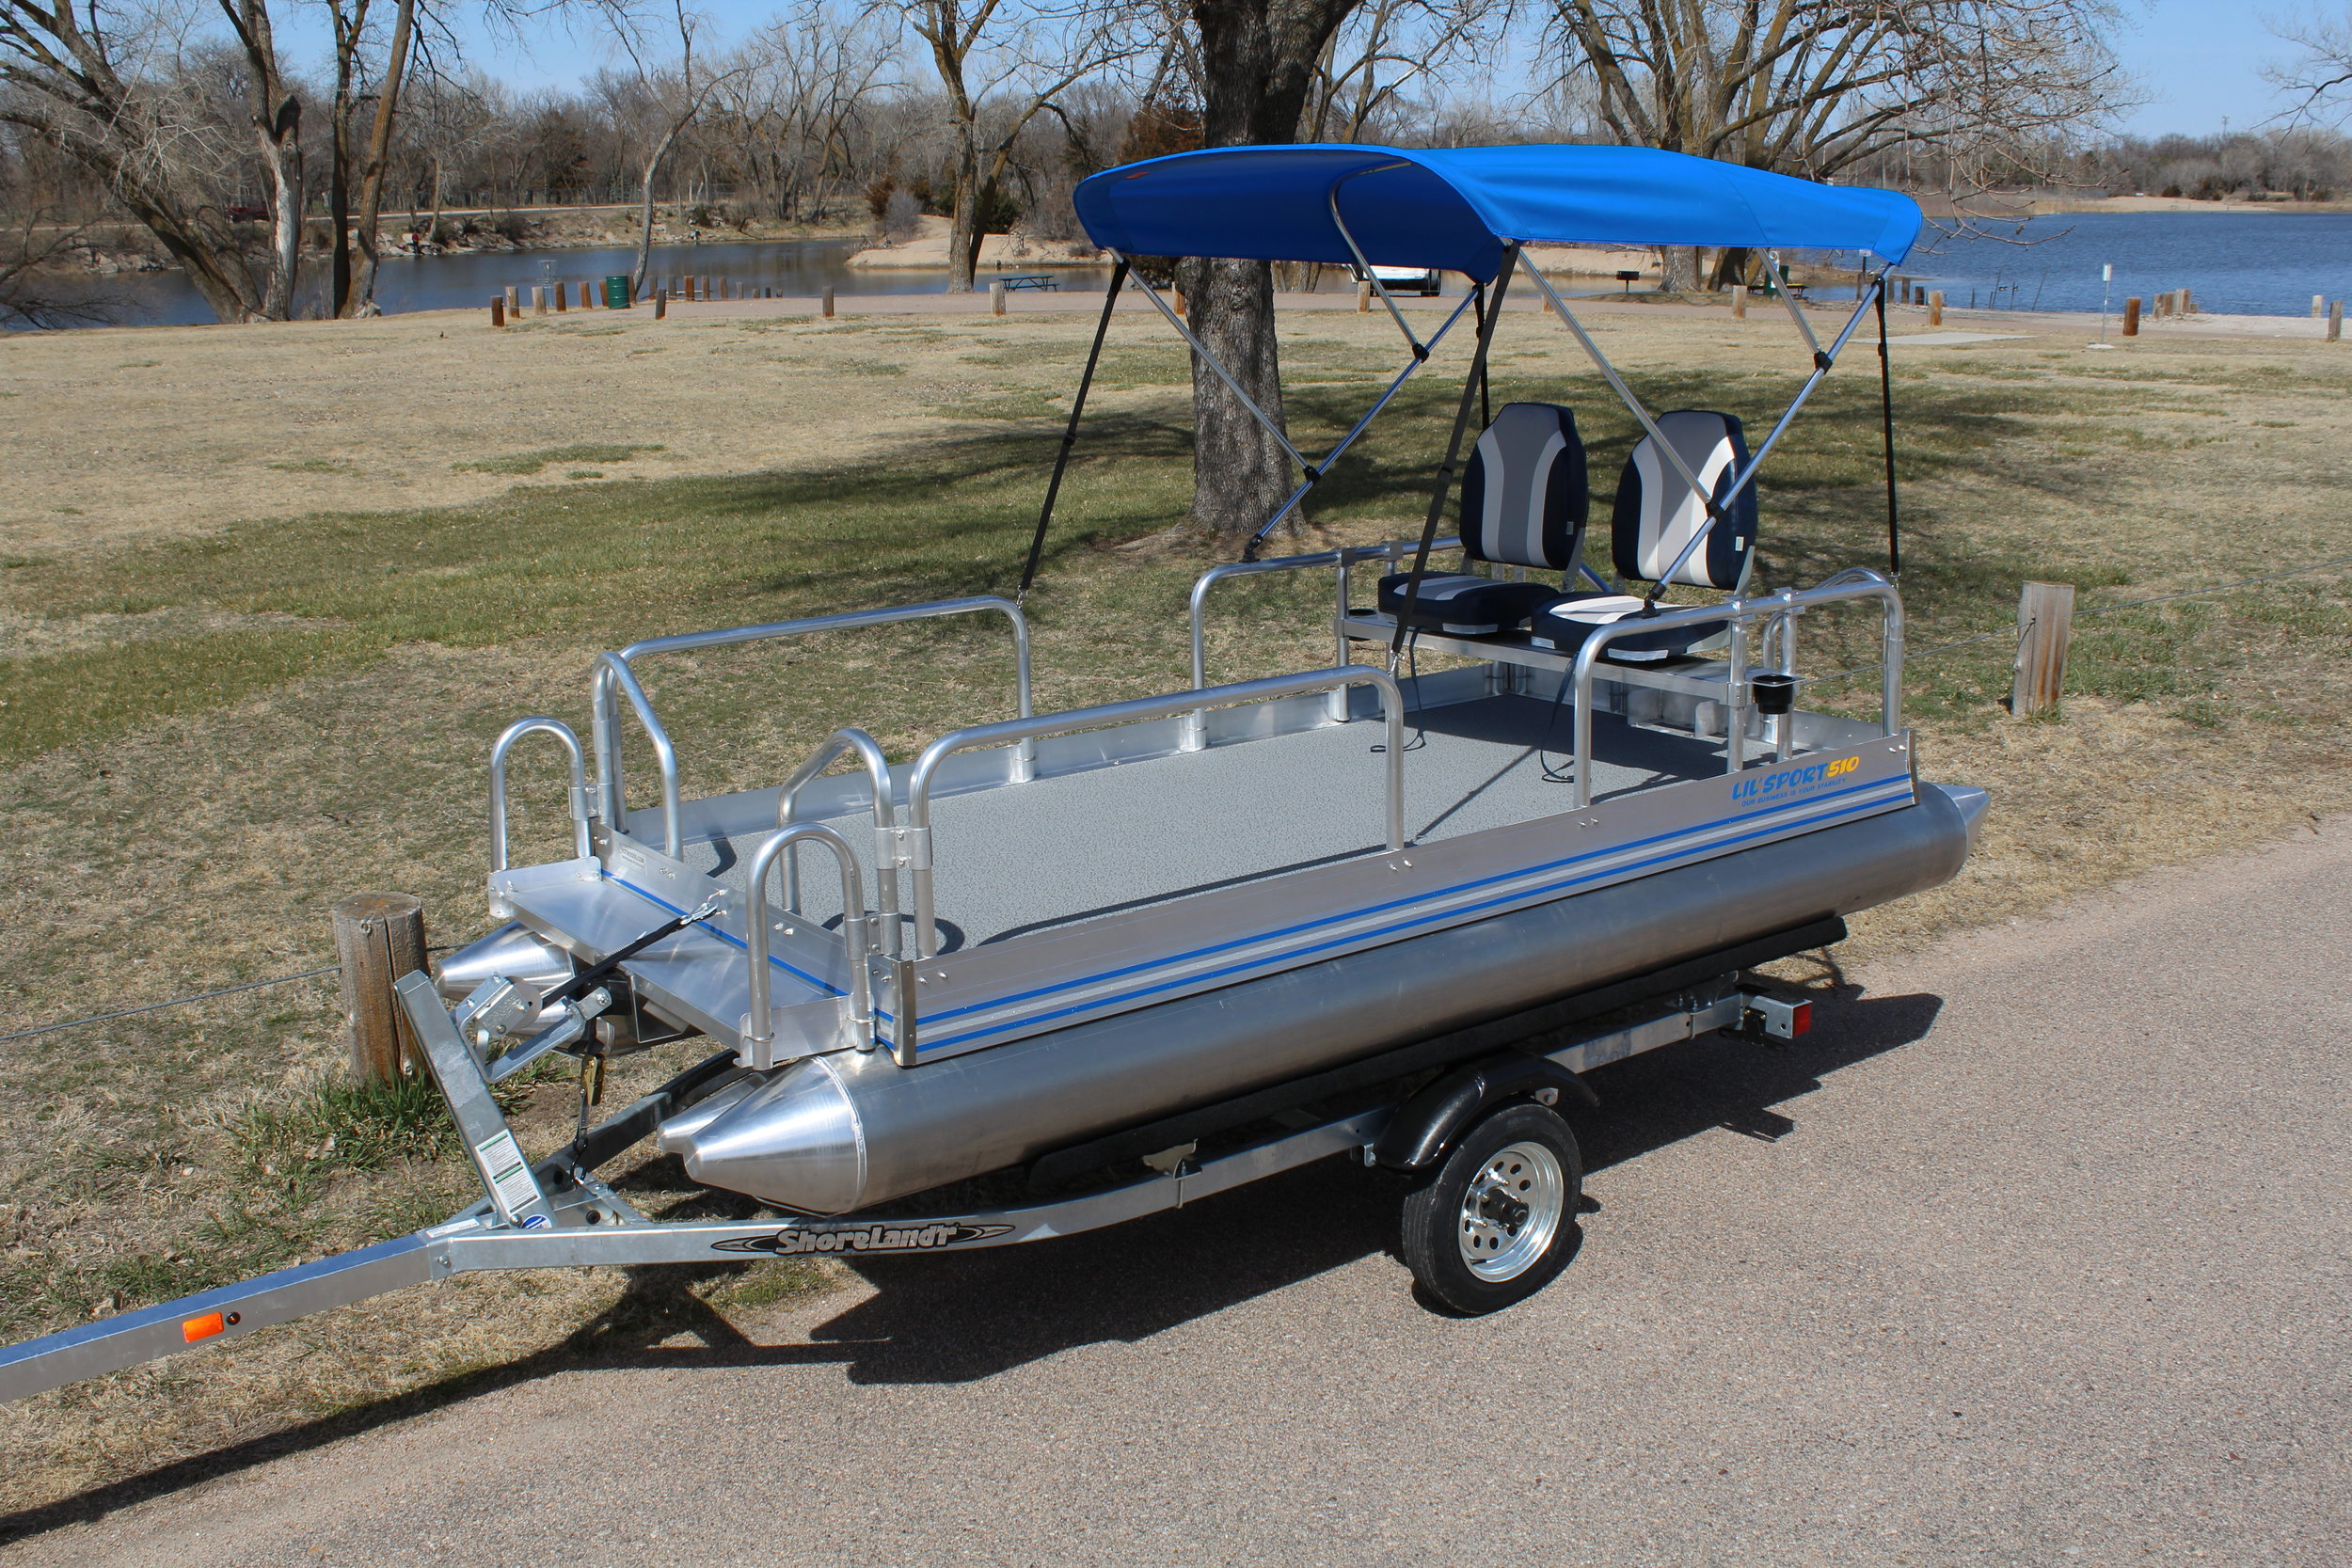 Lil Sport shown with optional canopy, bench seat, 2 swivel high back cushion seats bolted to that bench and the Shoreland'r galvanized trailer. This makes the perfect set up for those hard to get to lakes or the smaller ponds and lakes that we all know harbor some of the best fishing there is.